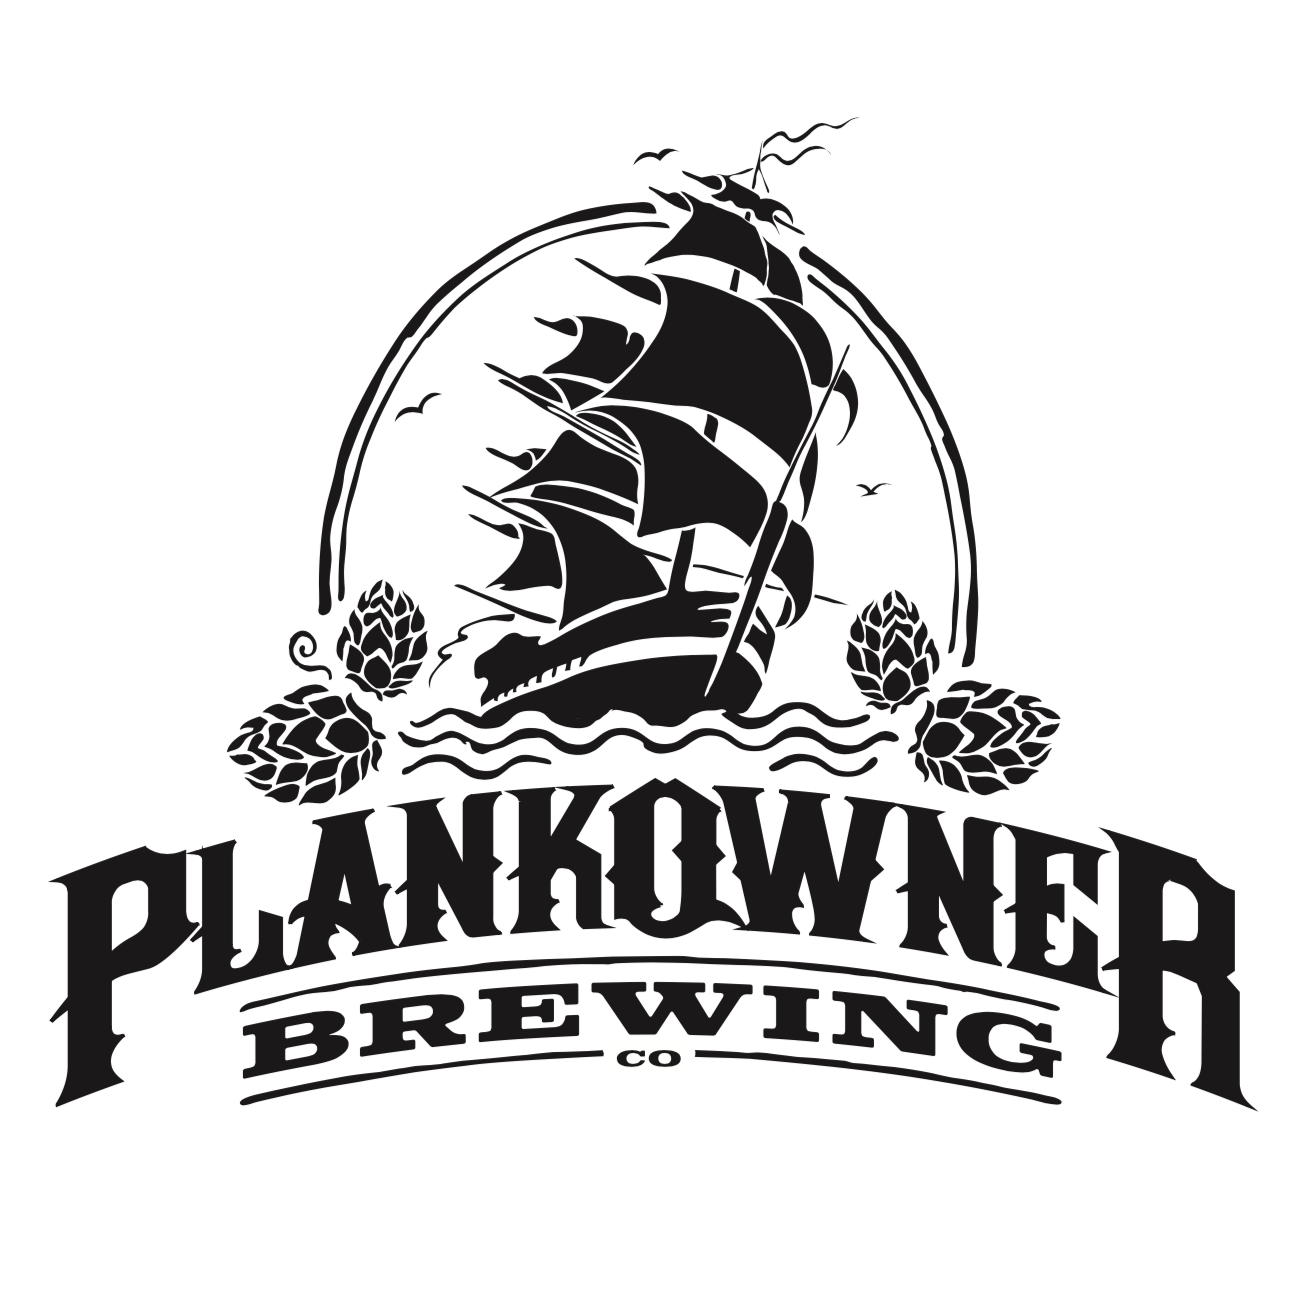 PlankownerBrewingLogo.png